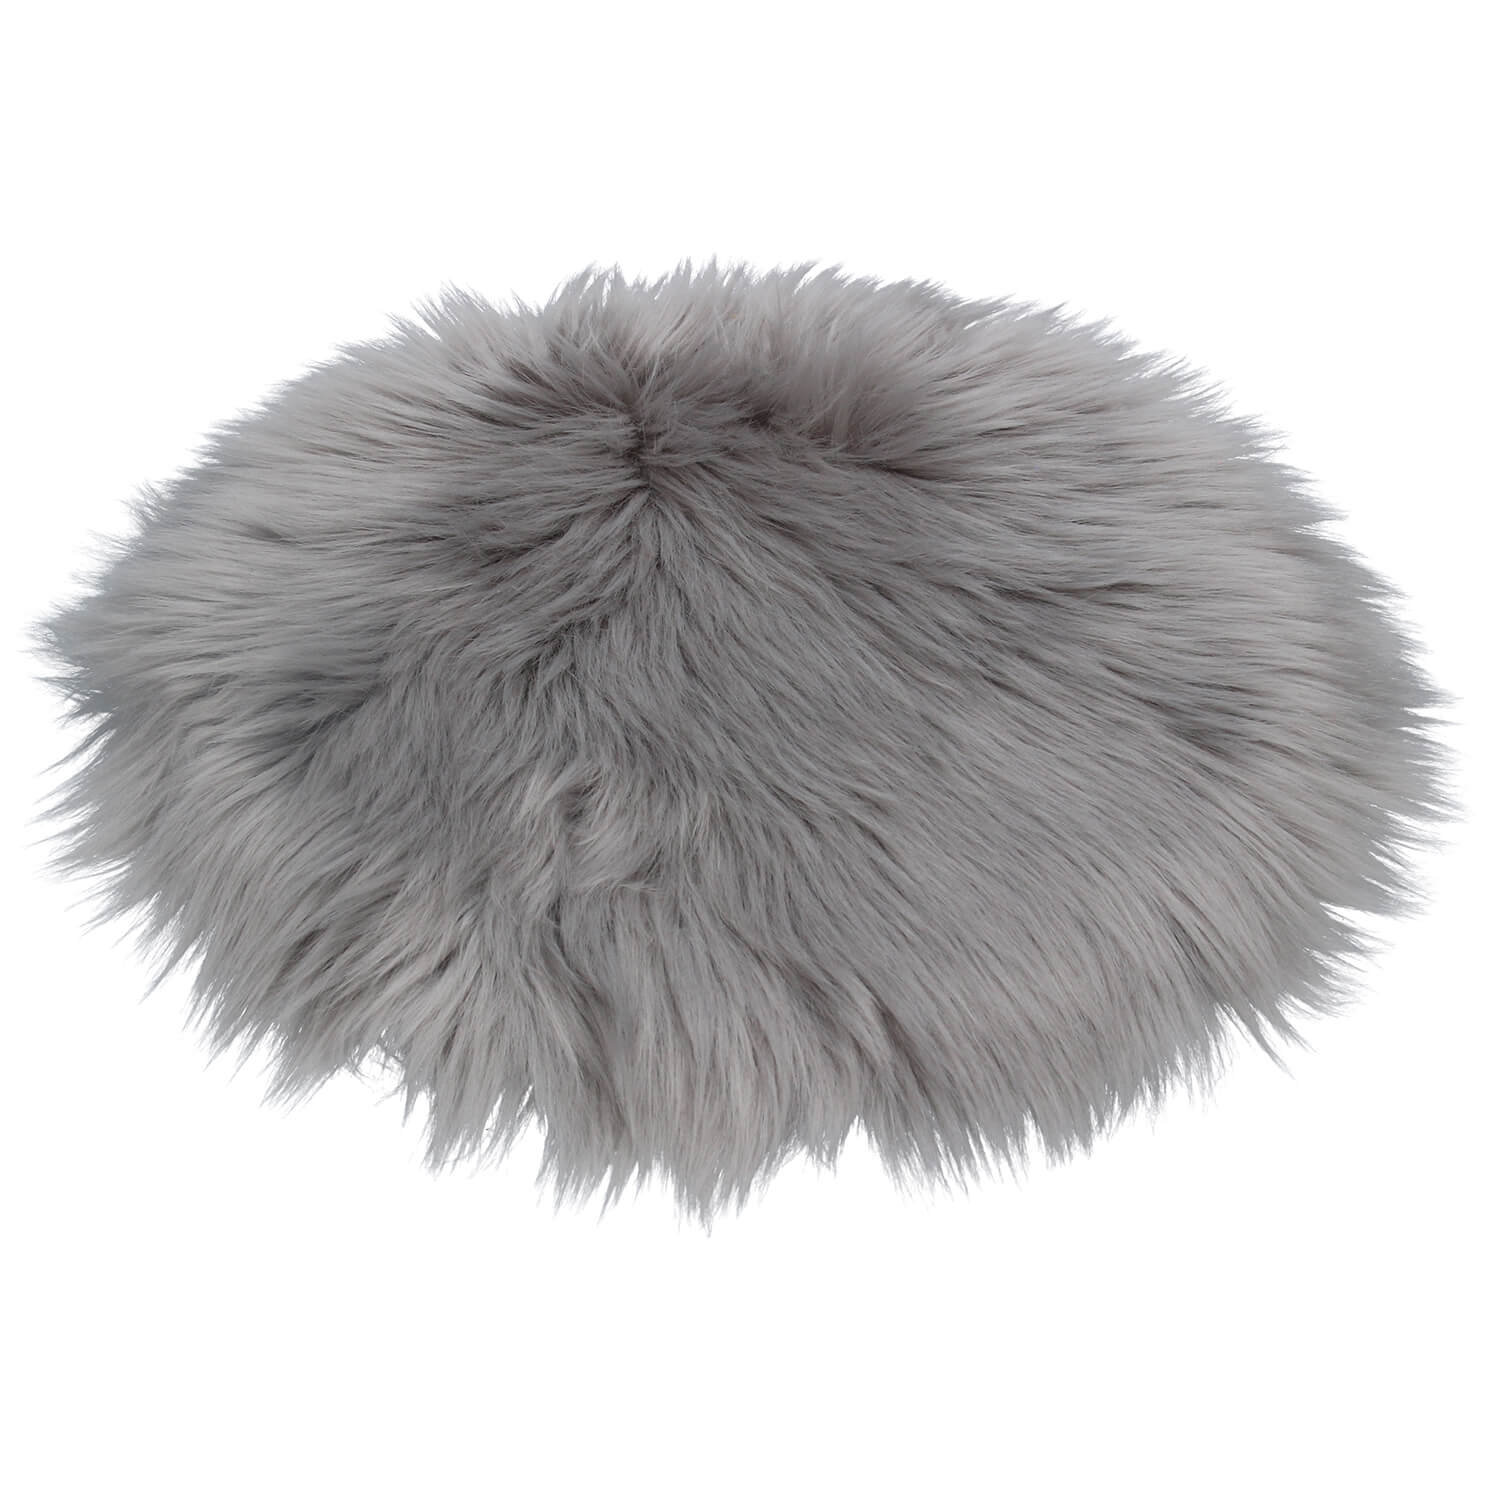 Image of Gisela Graham Faux Fur Relaxed Seat Cover, Grey